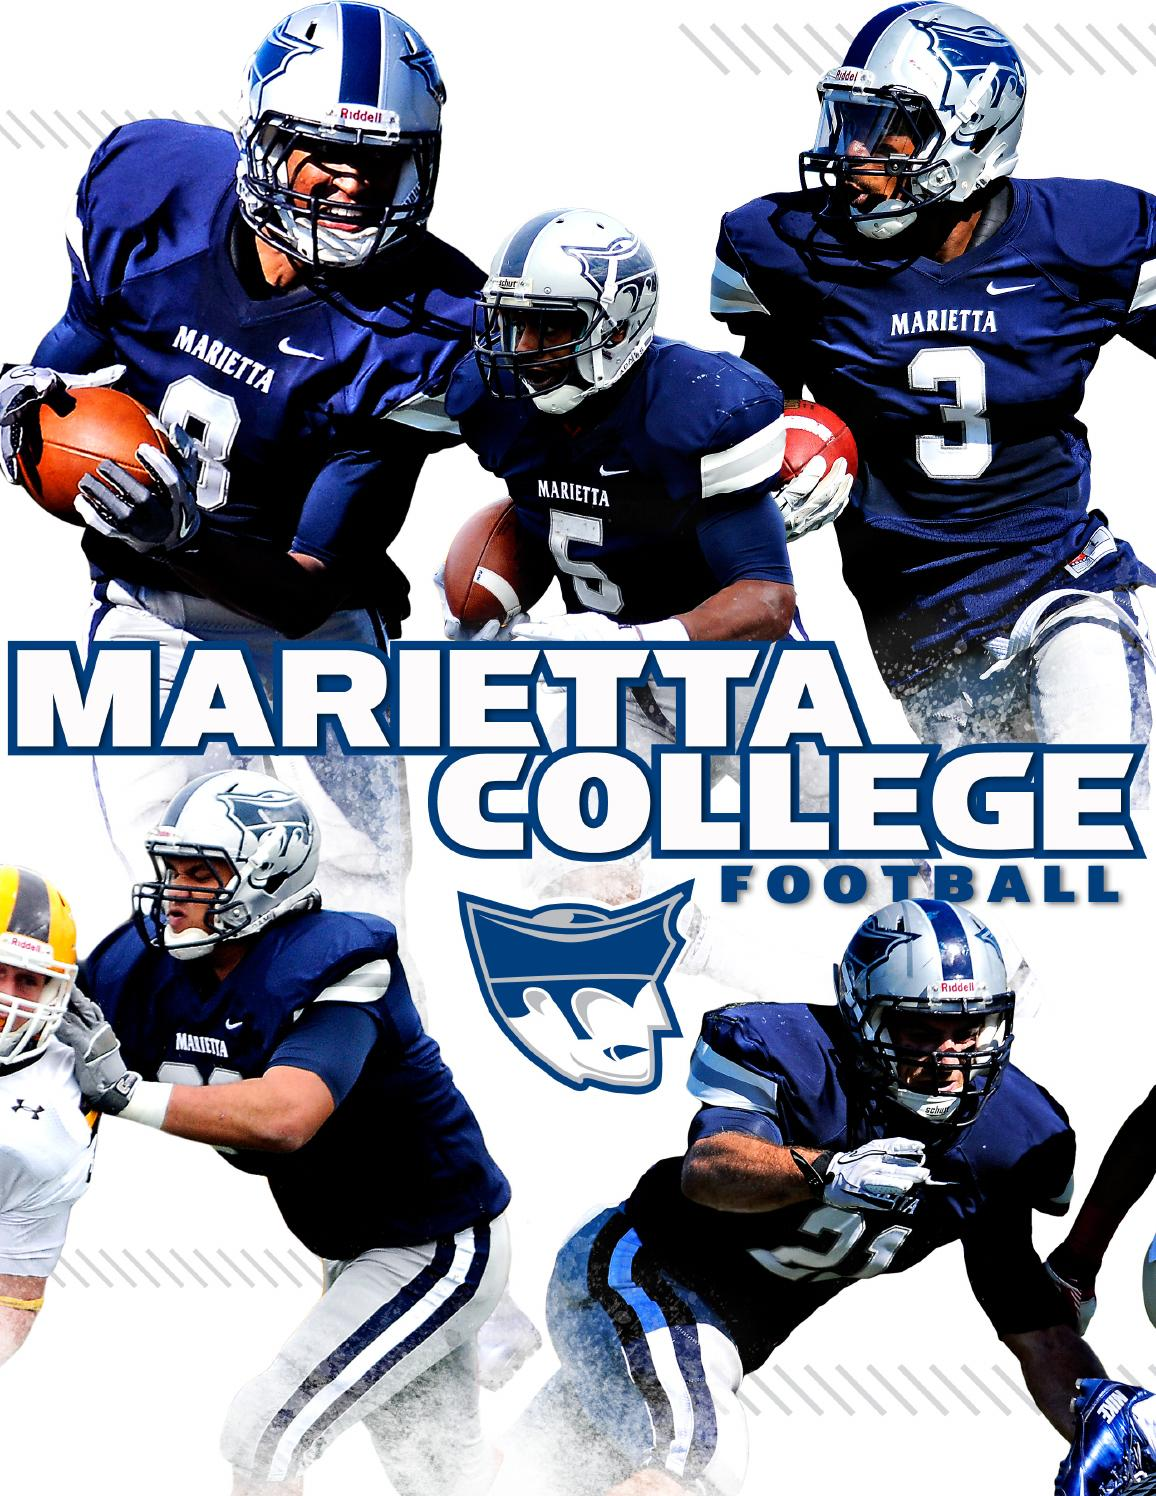 football recruiting brochure 2013 by marietta college. Black Bedroom Furniture Sets. Home Design Ideas